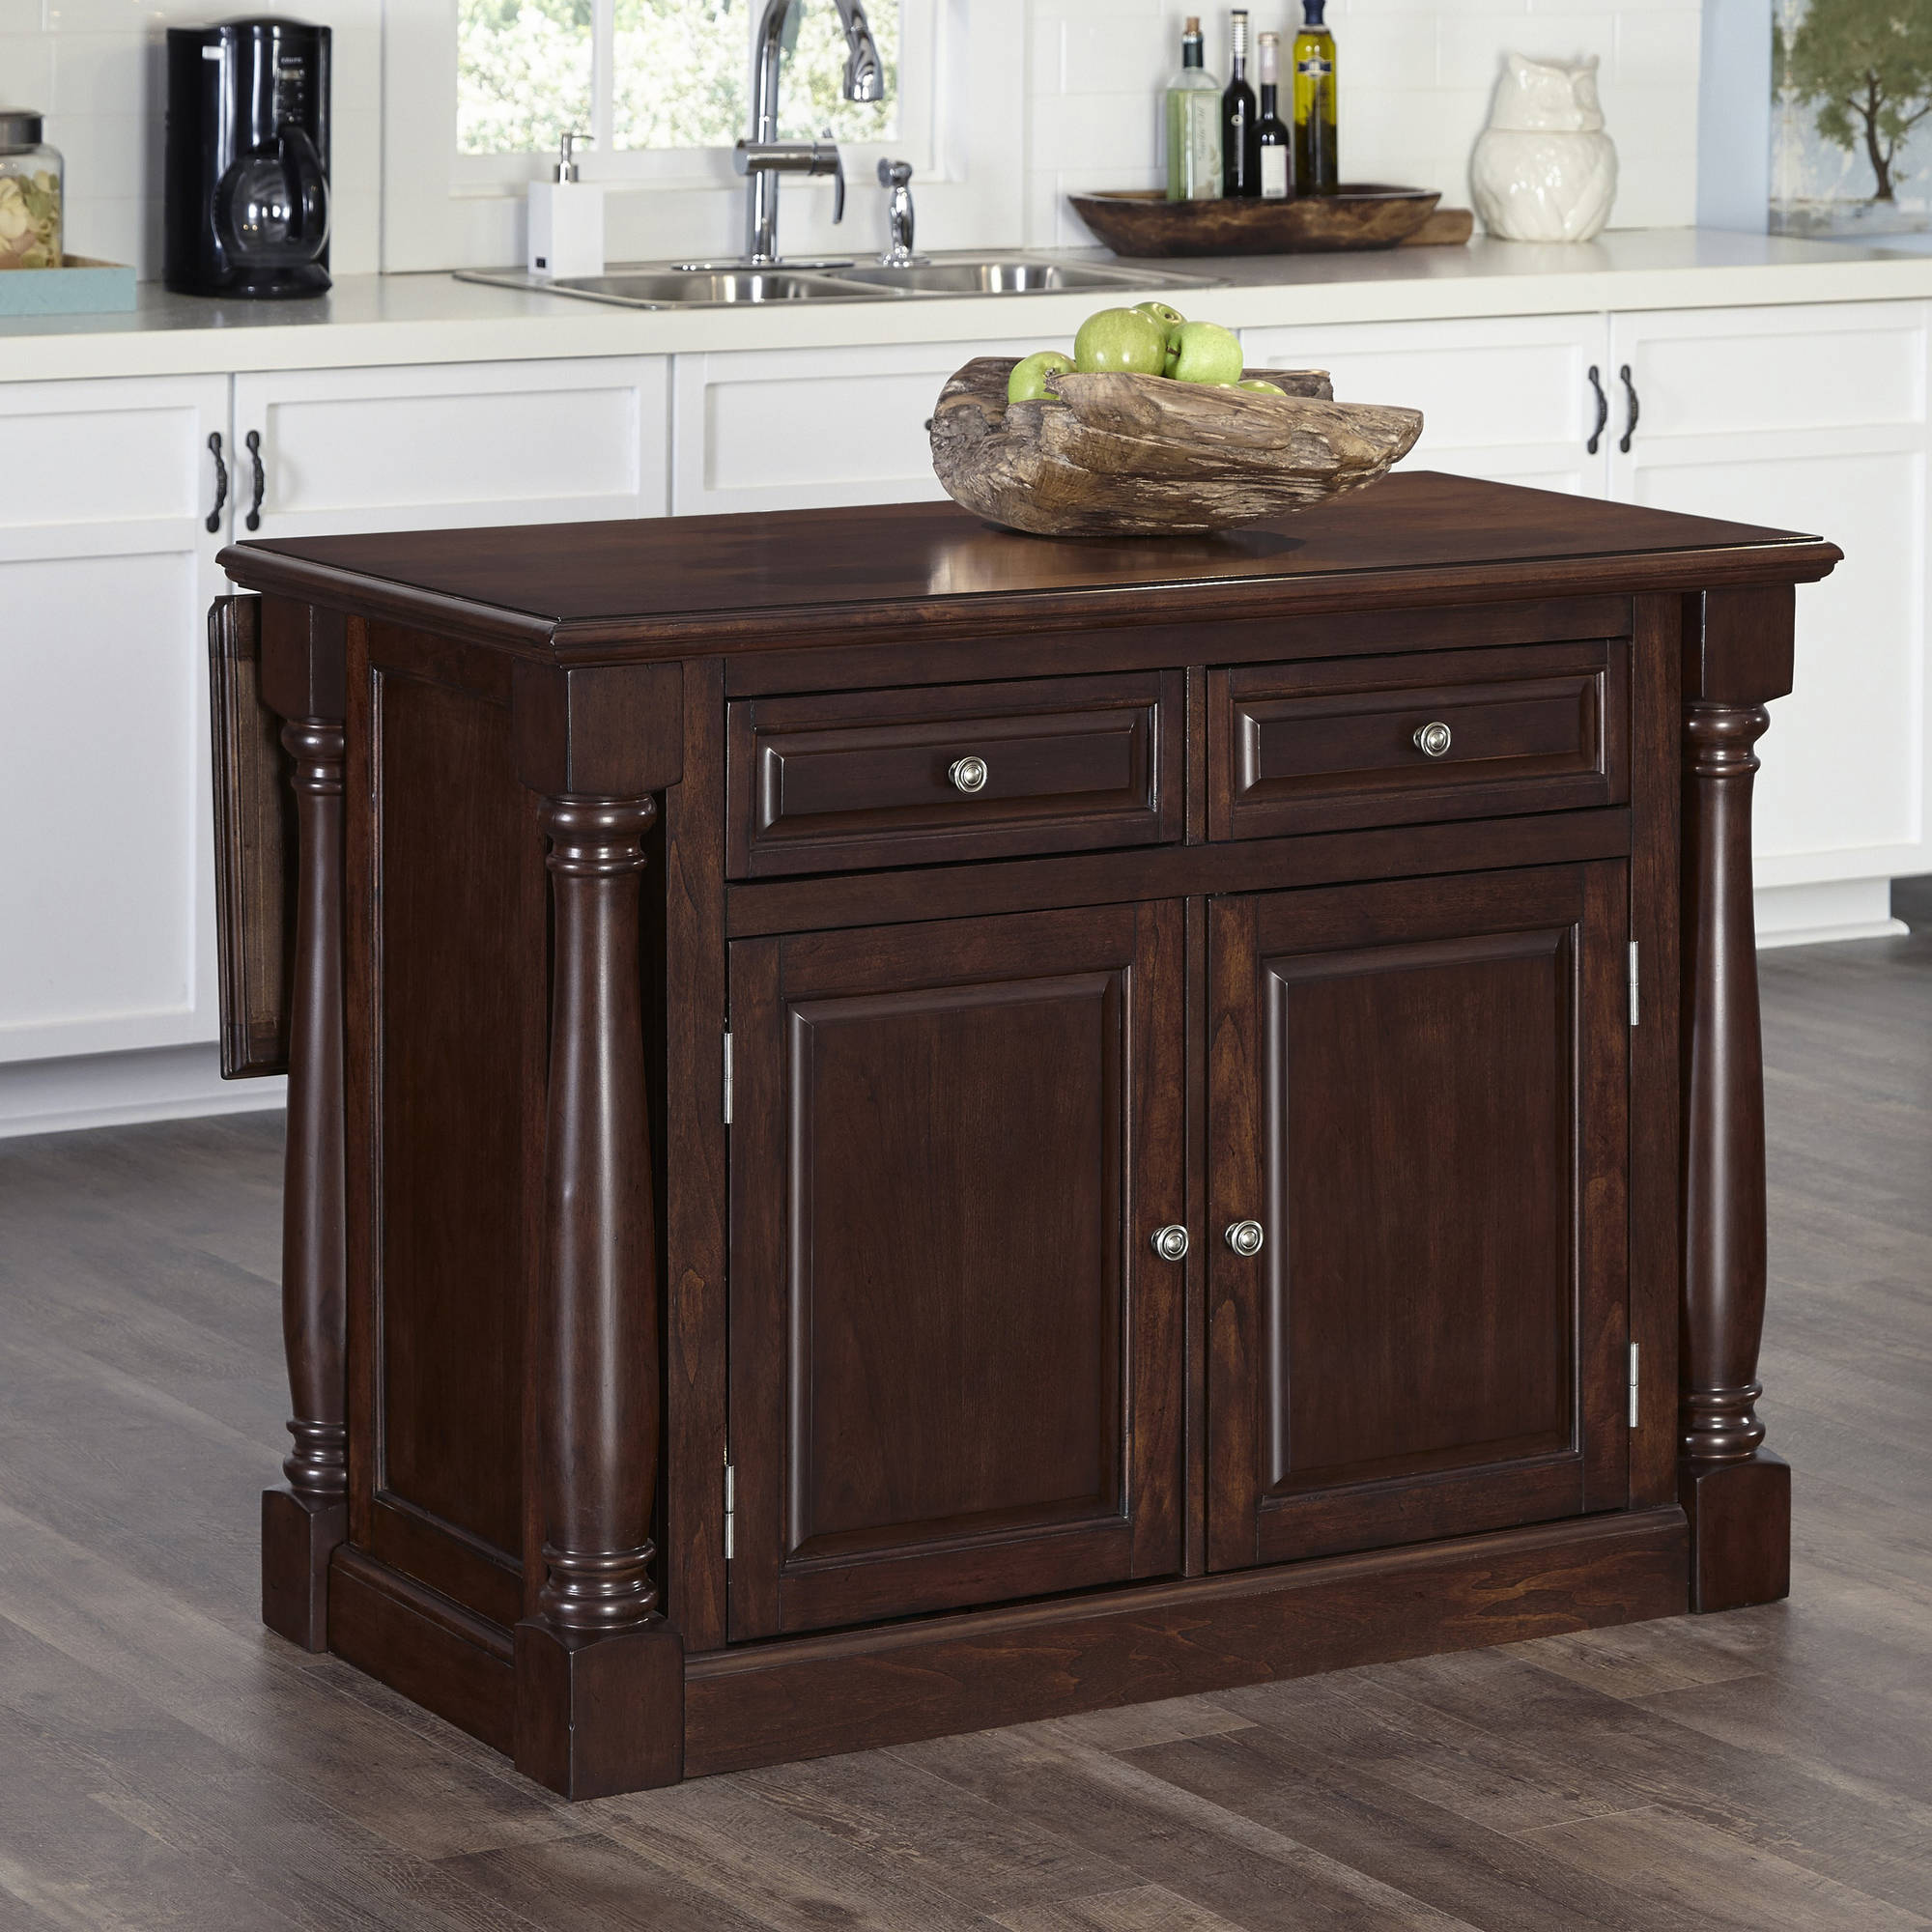 kitchen island cherry kitchen island with wood top in cherry finish walmart 1868